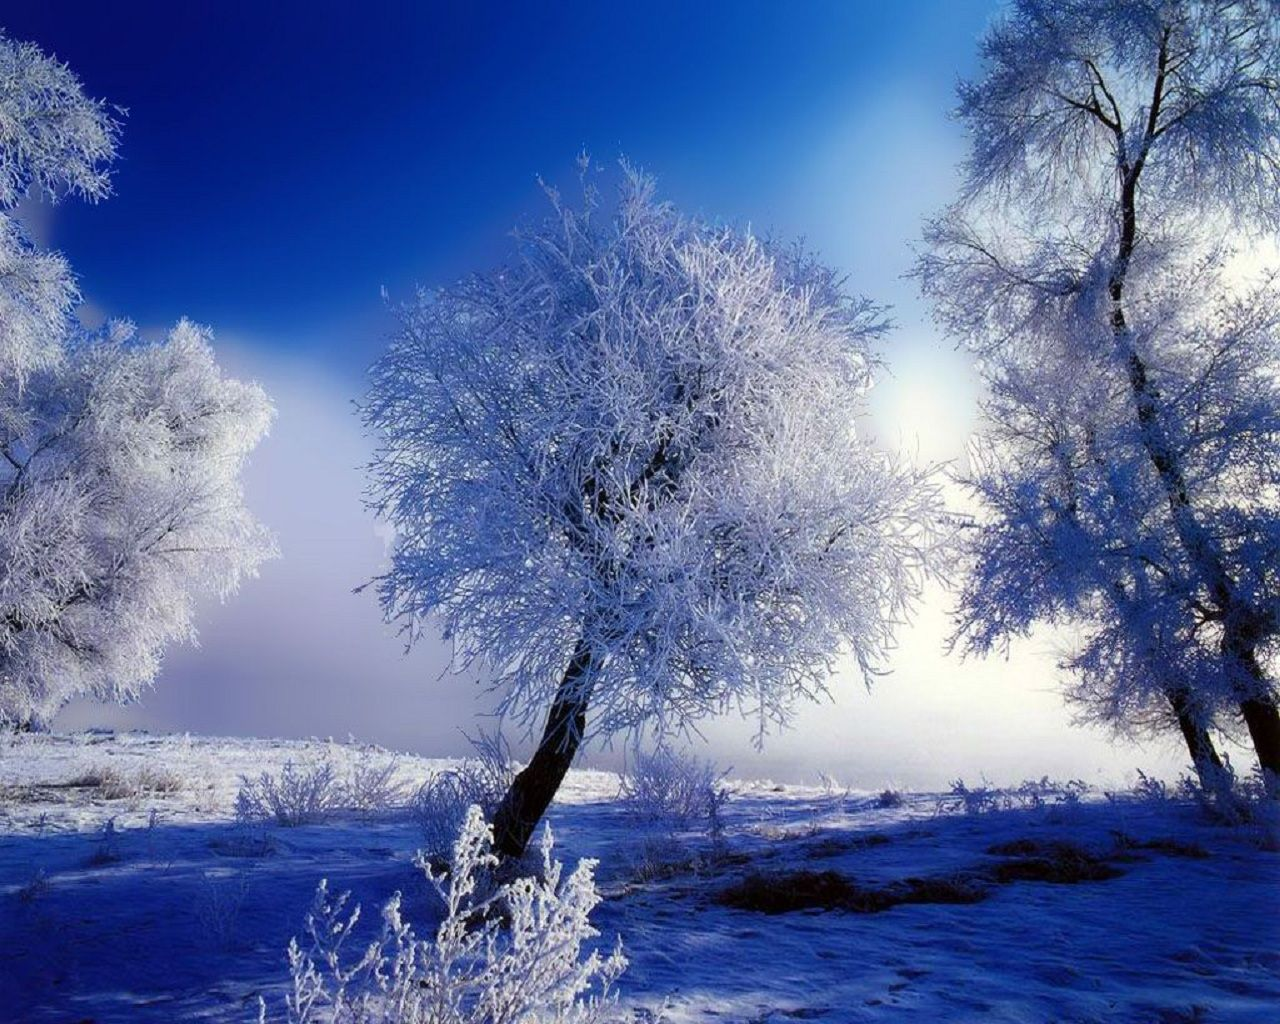 ] Ch Hnh Nn Tuyt Snow Wallpapers HD Full HD 4K 1280x1024